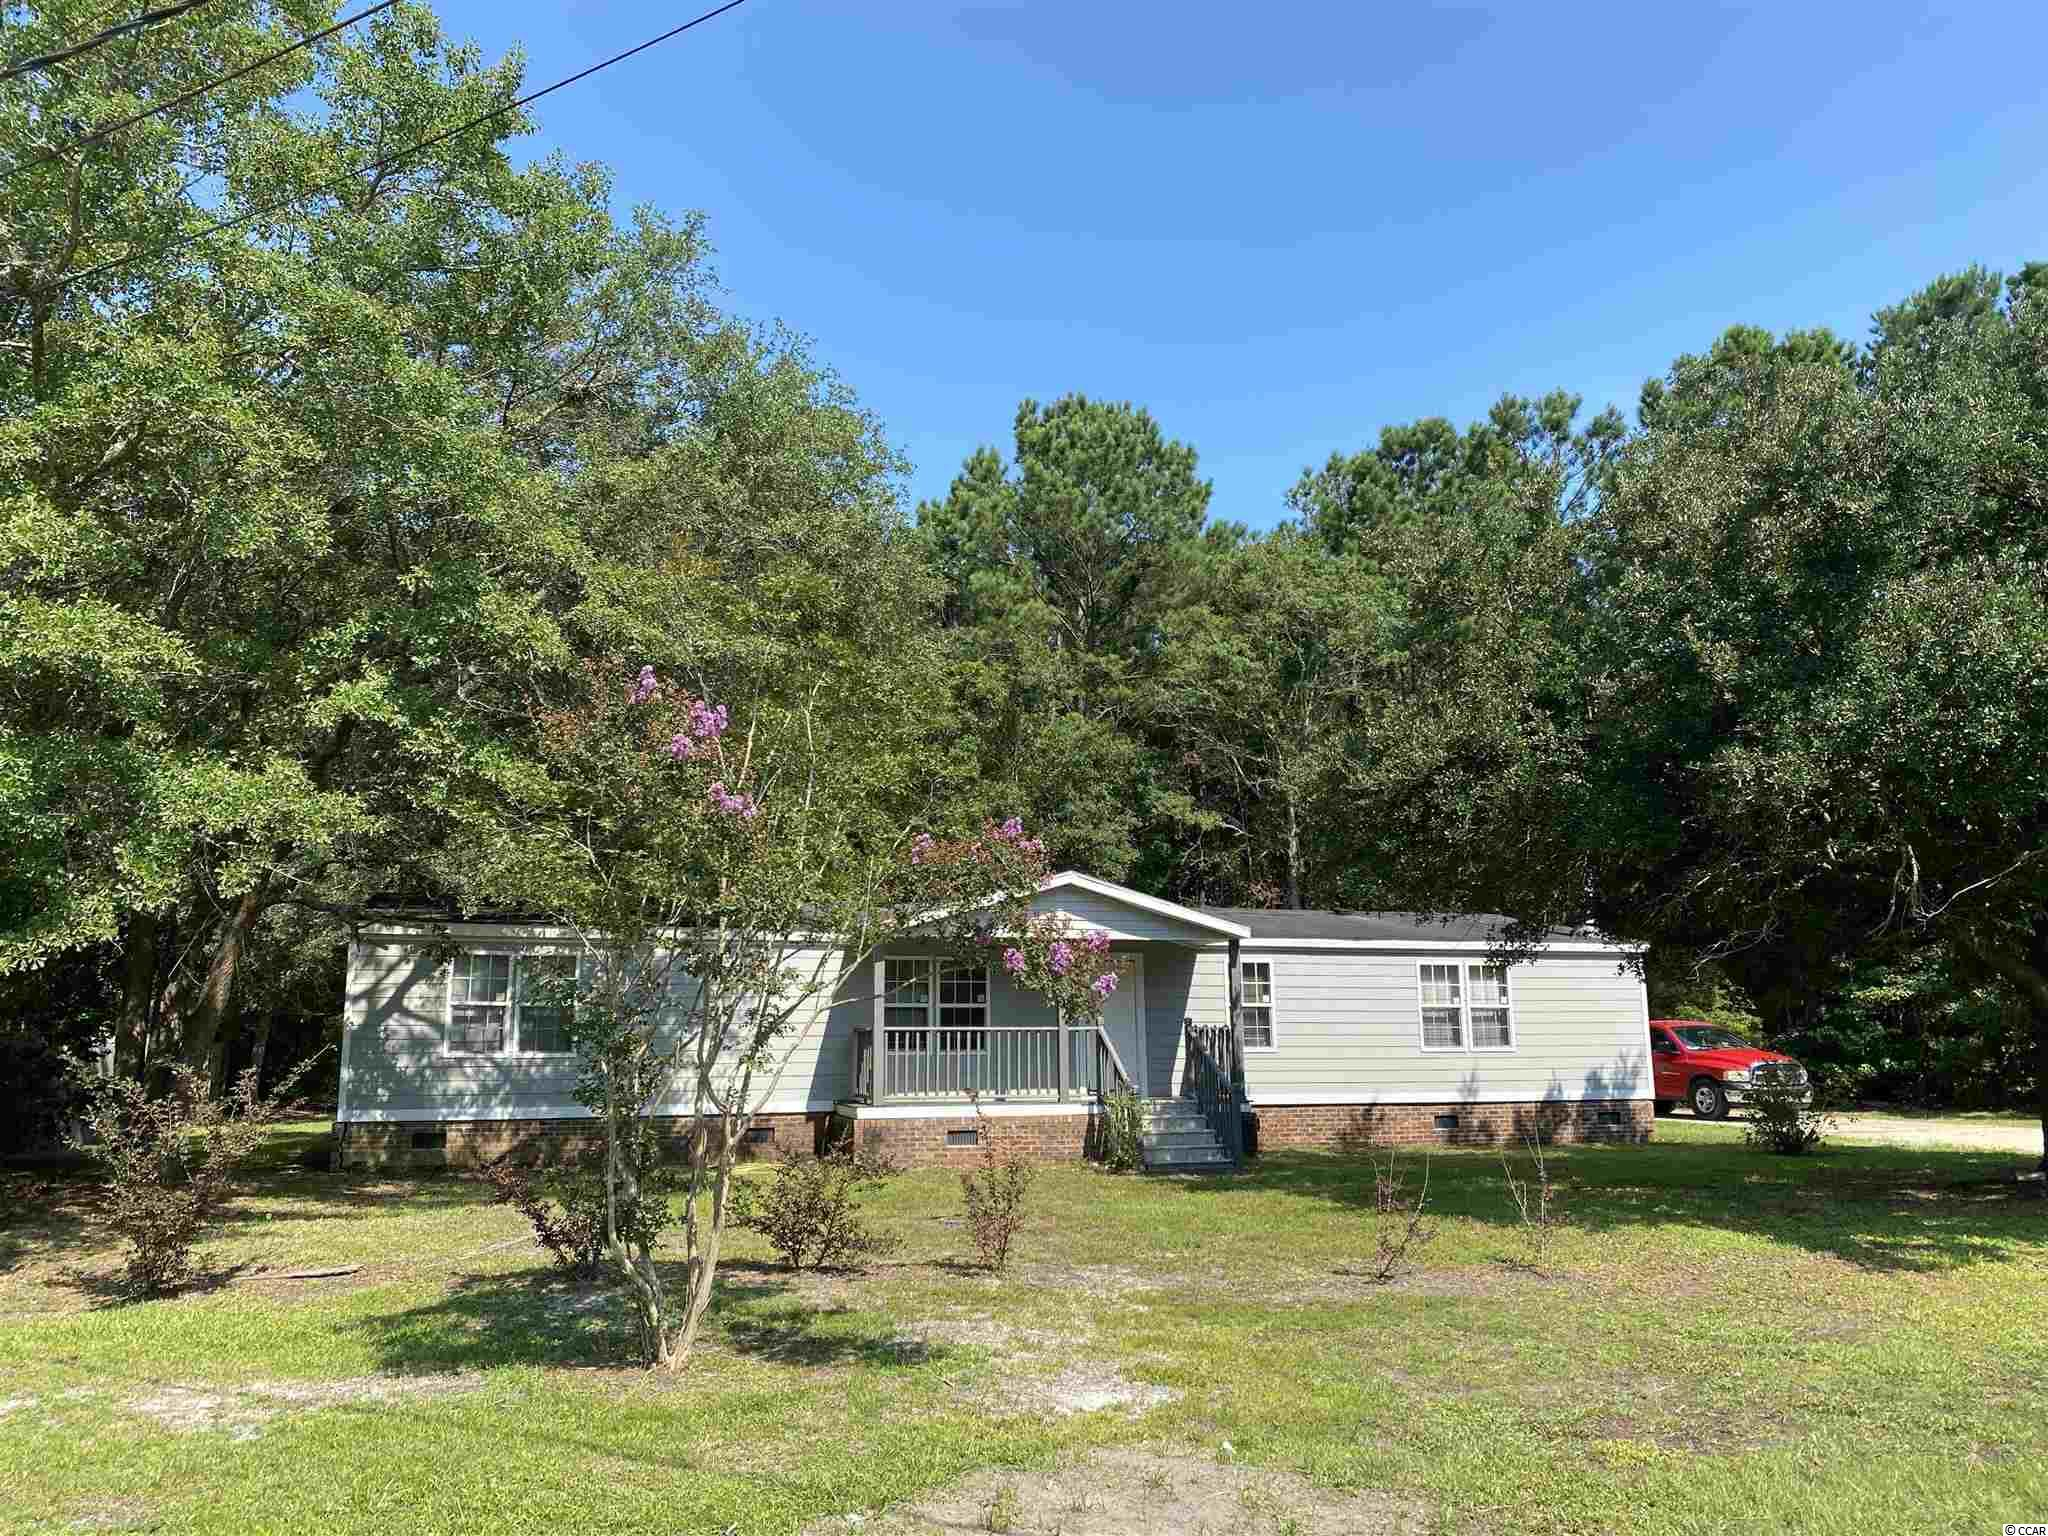 """Permanently affixed 3 bedroom, 2 bath manufactured home with approx. .37 acres. Spacious open floor plan with oversized rooms. Several upgrades within last 2-3 years include hardiplank siding, refurbished bathroom showers, shiplap, laminate flooring, etc. Enjoy the outside on the side porch or large deck overlooking the back yard. A little TLC and this will be a true gem. This home is at the end of a cul-de-sac providing privacy and is conveniently located near schools, shops, Pawleys Island beach, and the Waccamaw River.  Cash offers only - being sold """"As Is"""". Seller will not do any repairs."""